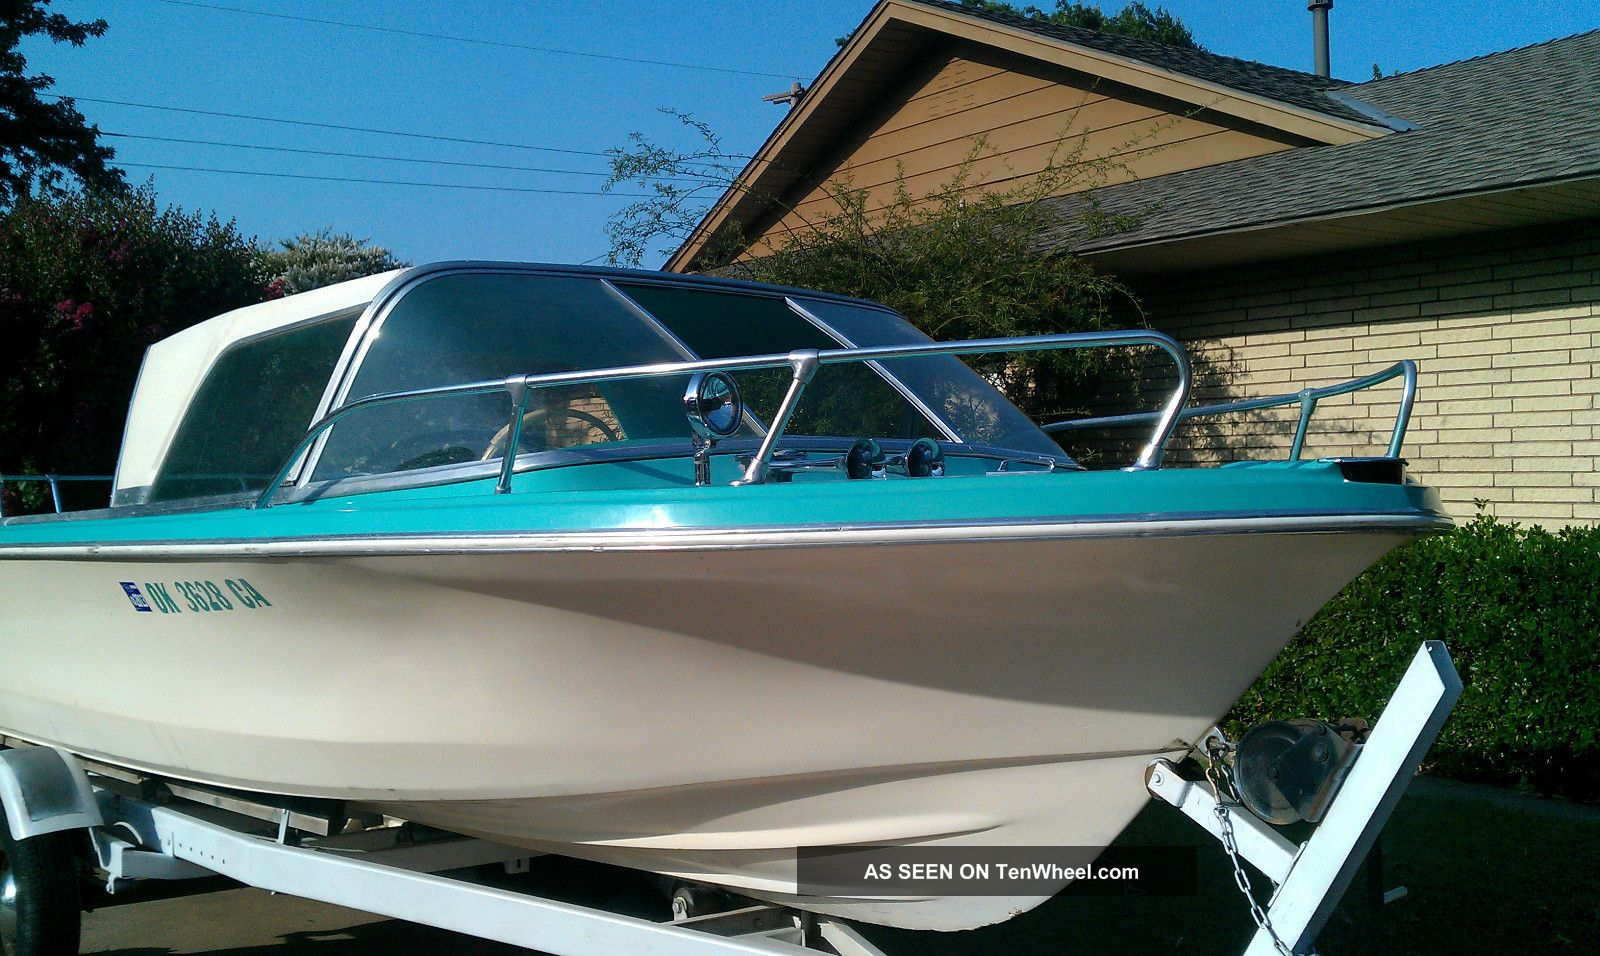 1966 Aristocraft 8 Teen Other Powerboats photo